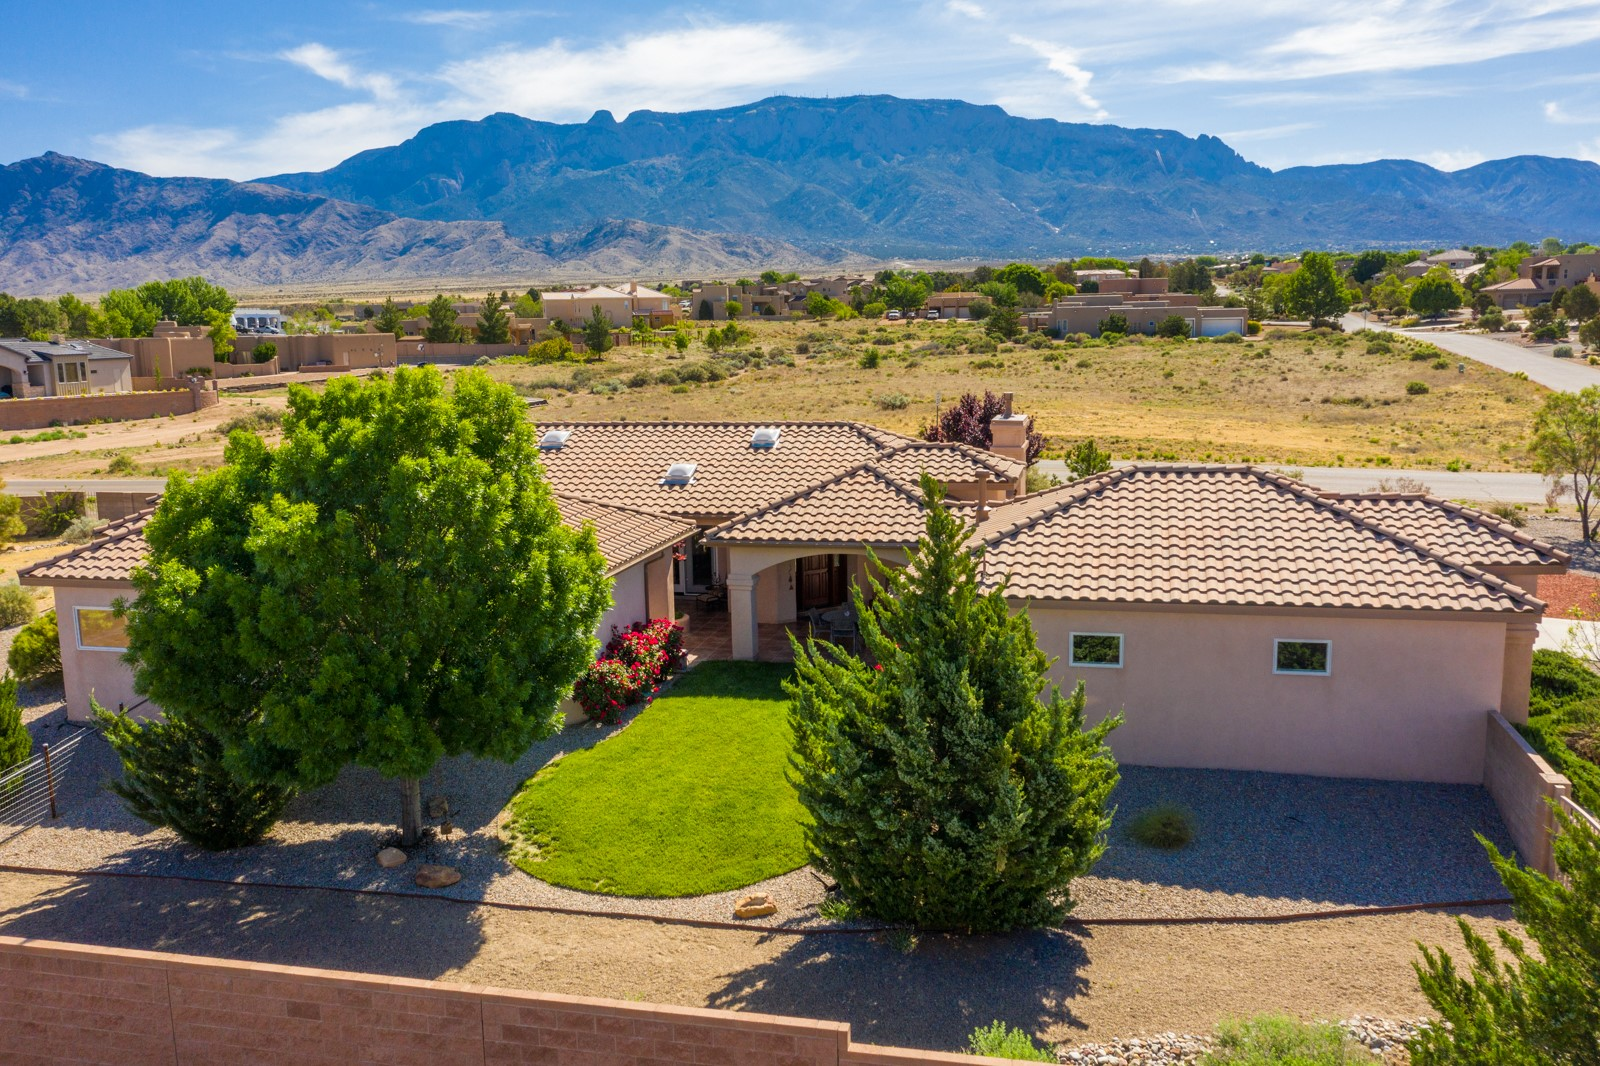 Single Owner Custom Homes - city water/sewer and underground utilities in North ABQ Acres